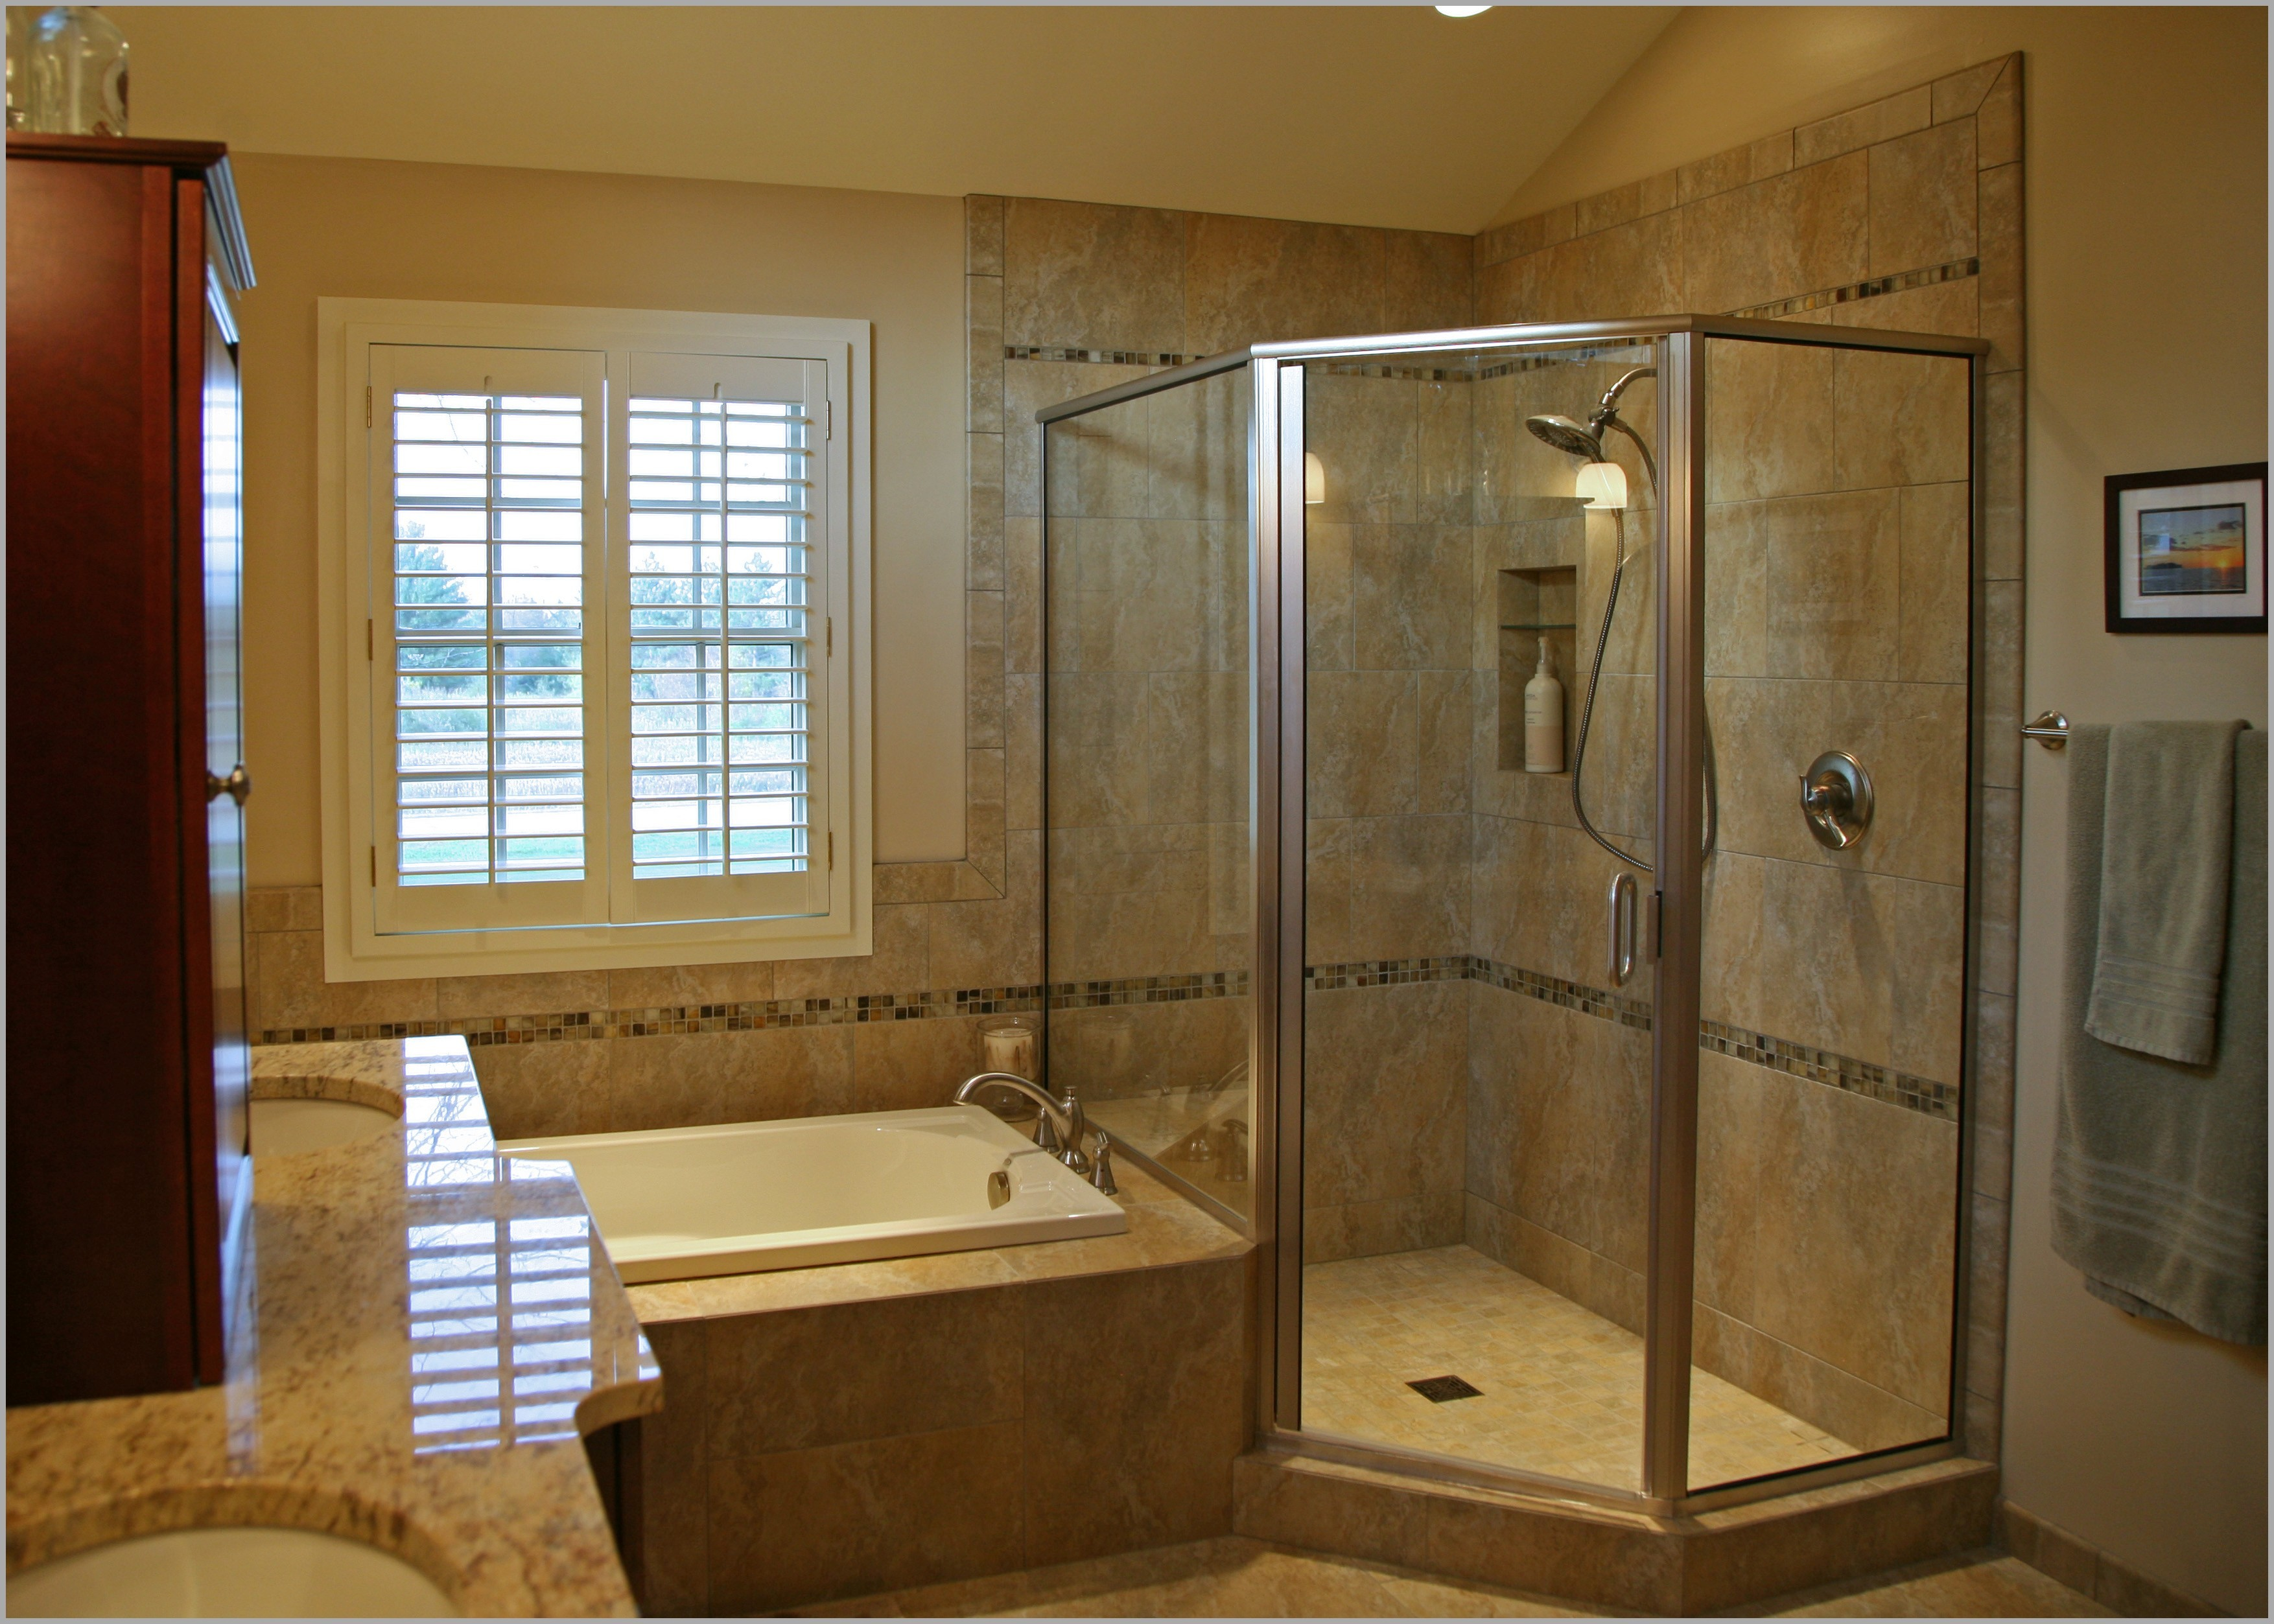 Strange Bathroom Addition Cost Vapha Kaptanband Co Home Interior And Landscaping Ologienasavecom